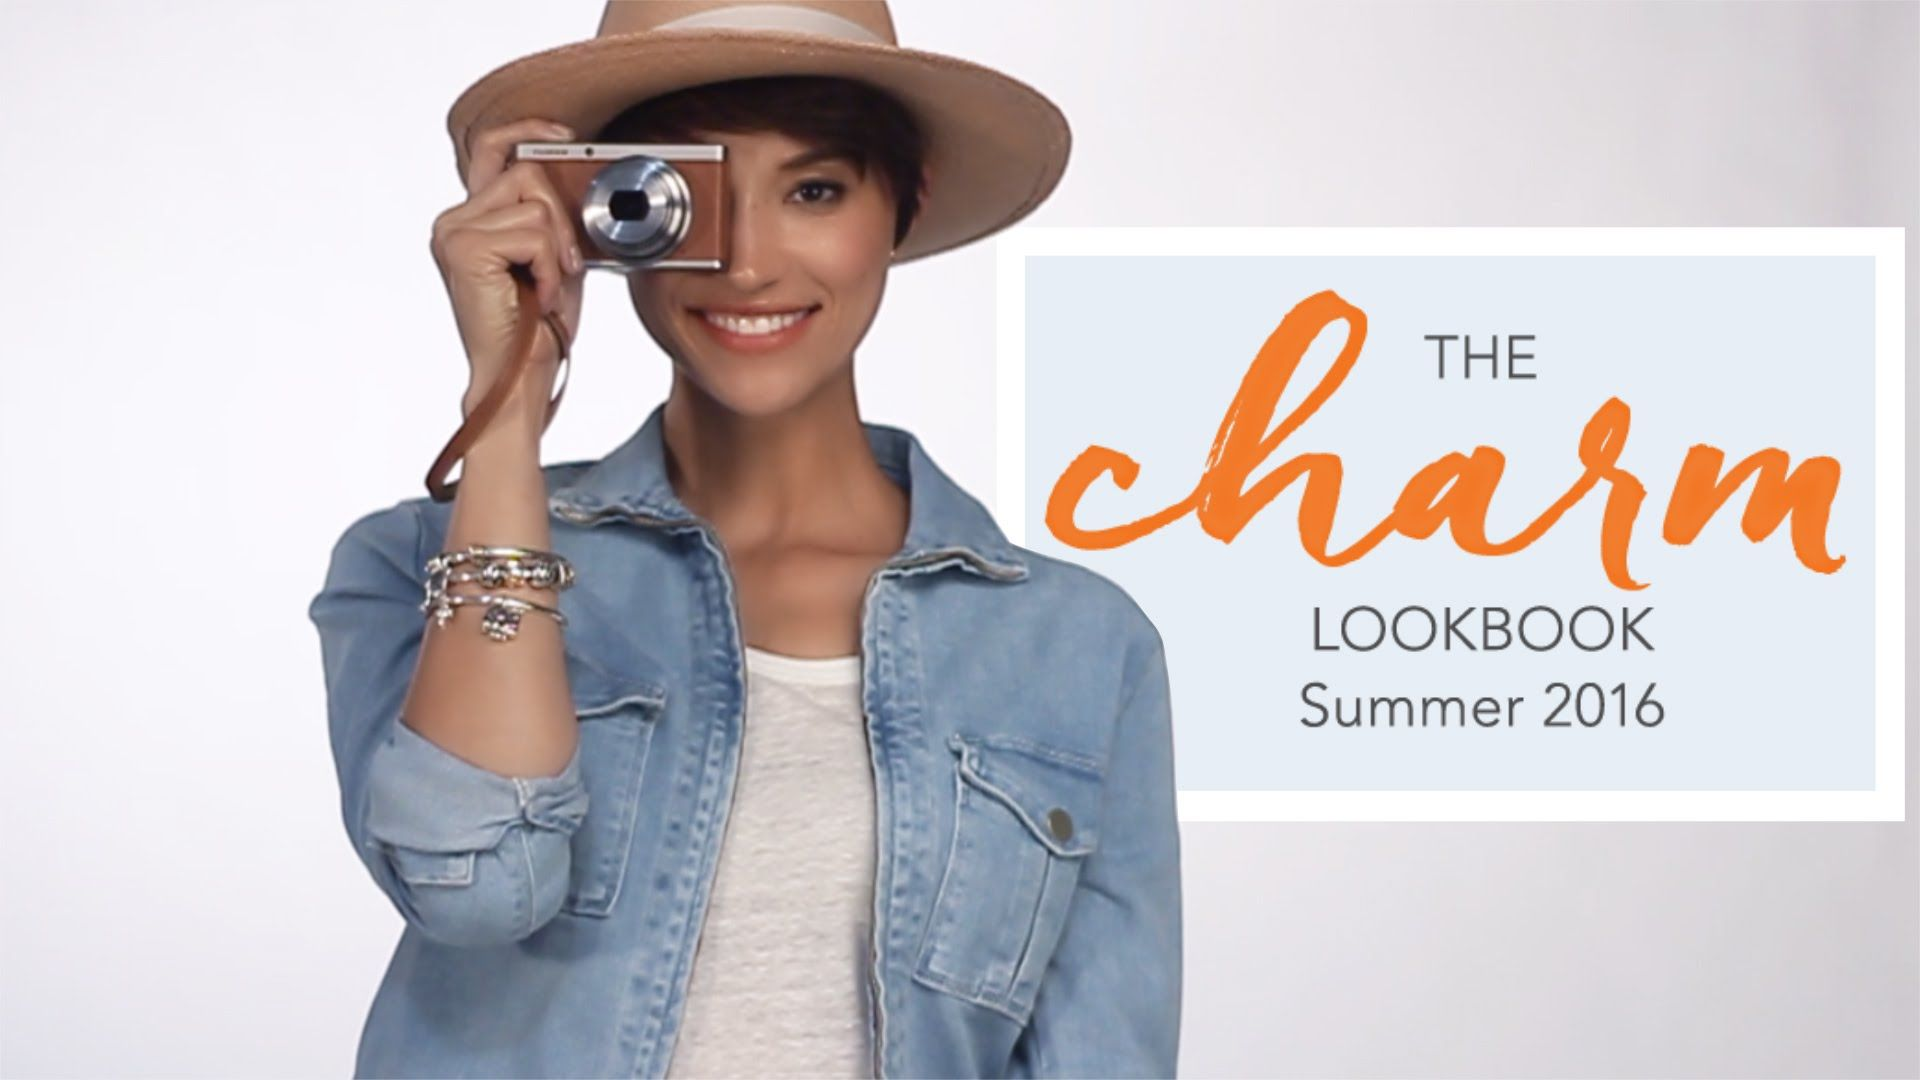 Get inspired to create your own jewelry using Brighton charms. Check out our exciting behind-the-scenes footage from our latest Summer Charms Lookbook!